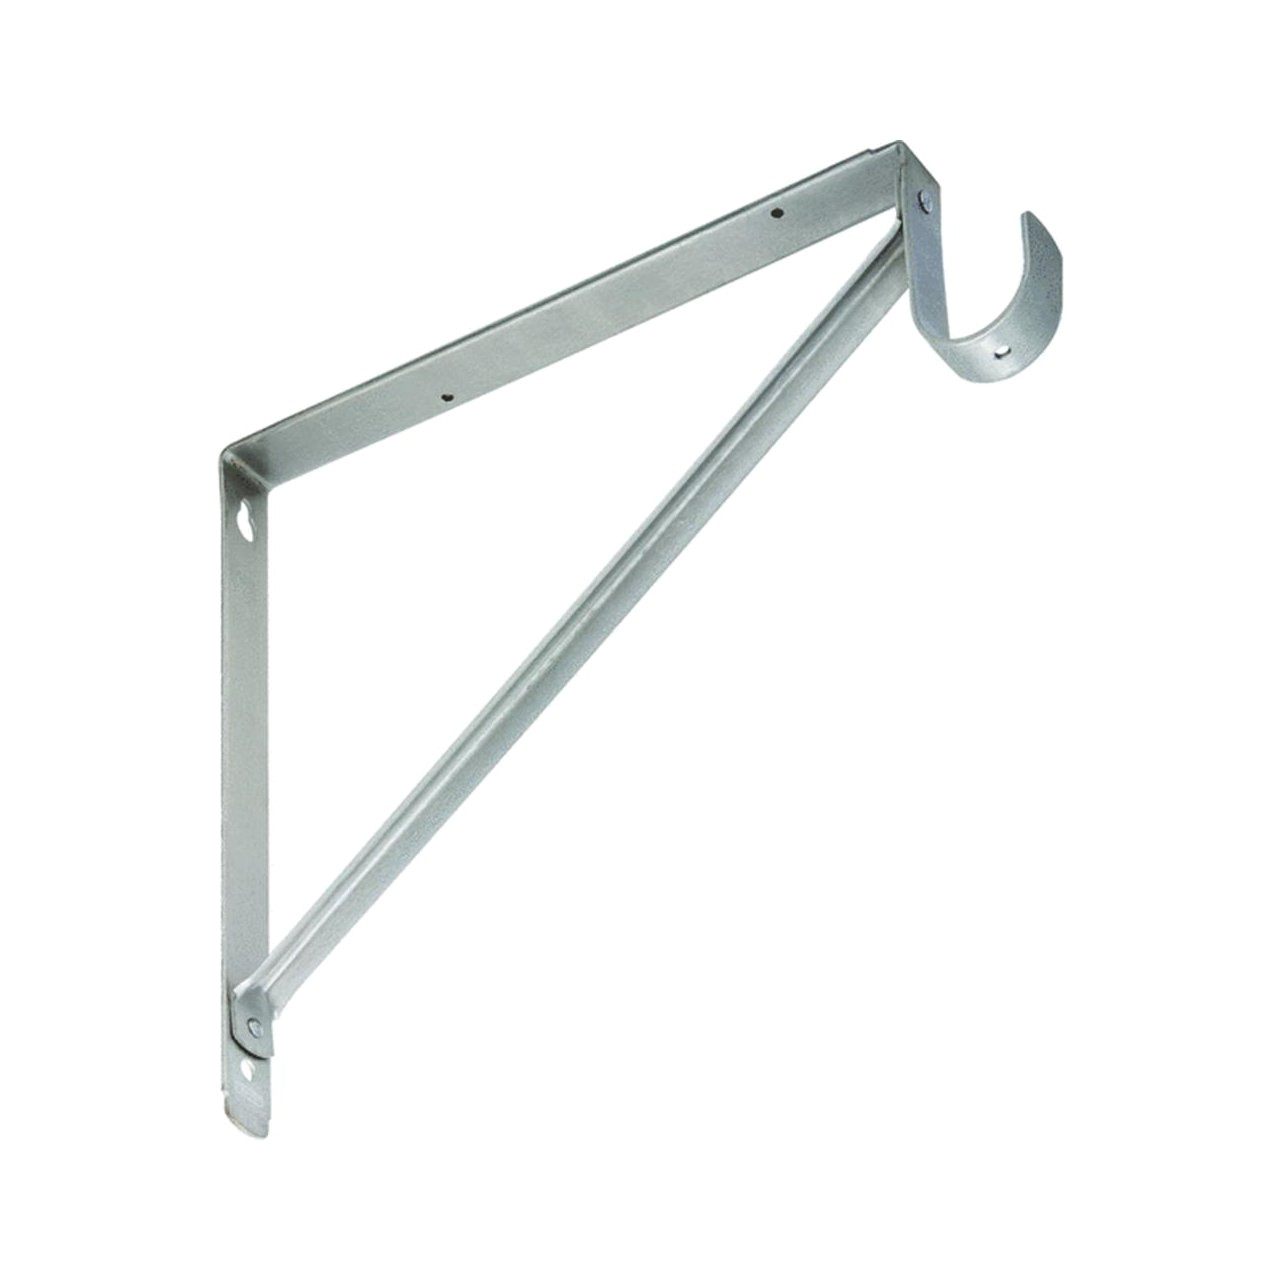 amazon com lido designs brushed nickel heavy duty shelf and rod bracket national hardware home kitchen